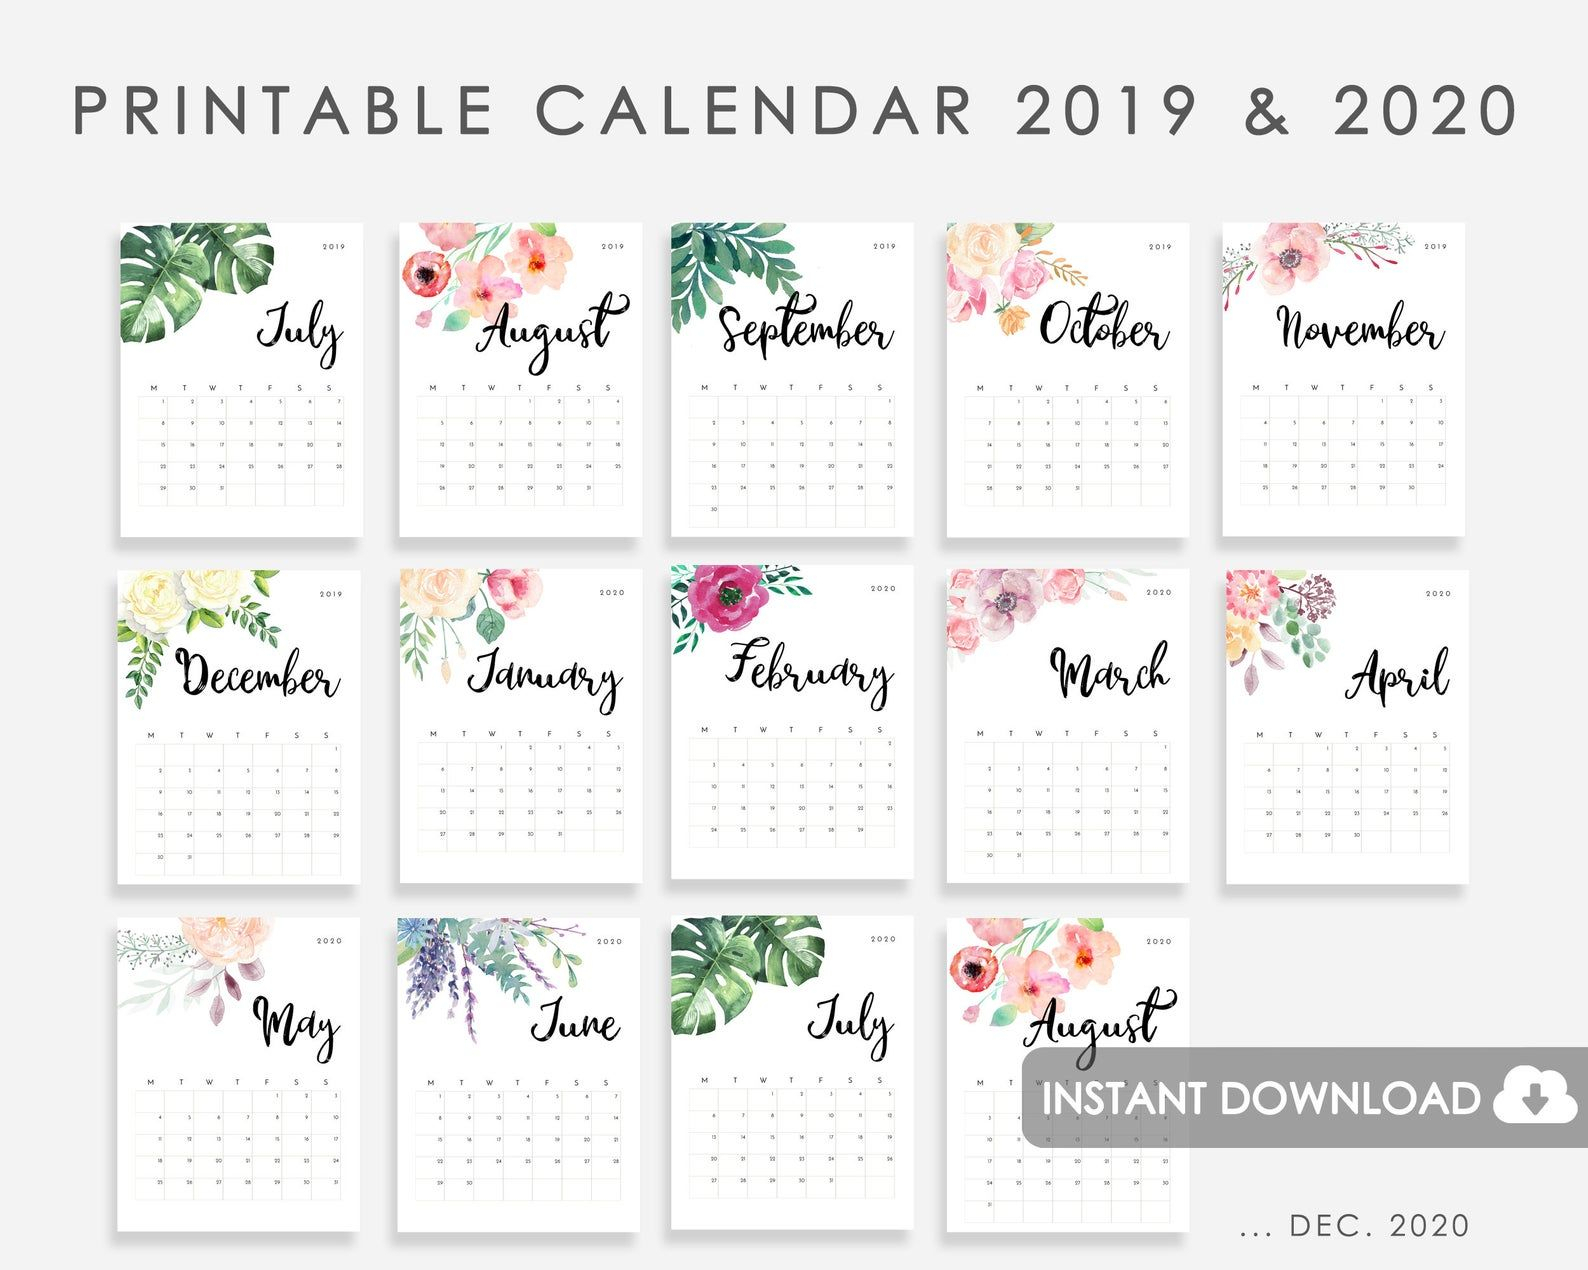 Calendar 2019-2020 Printable, Calendar Watercolor Flowers